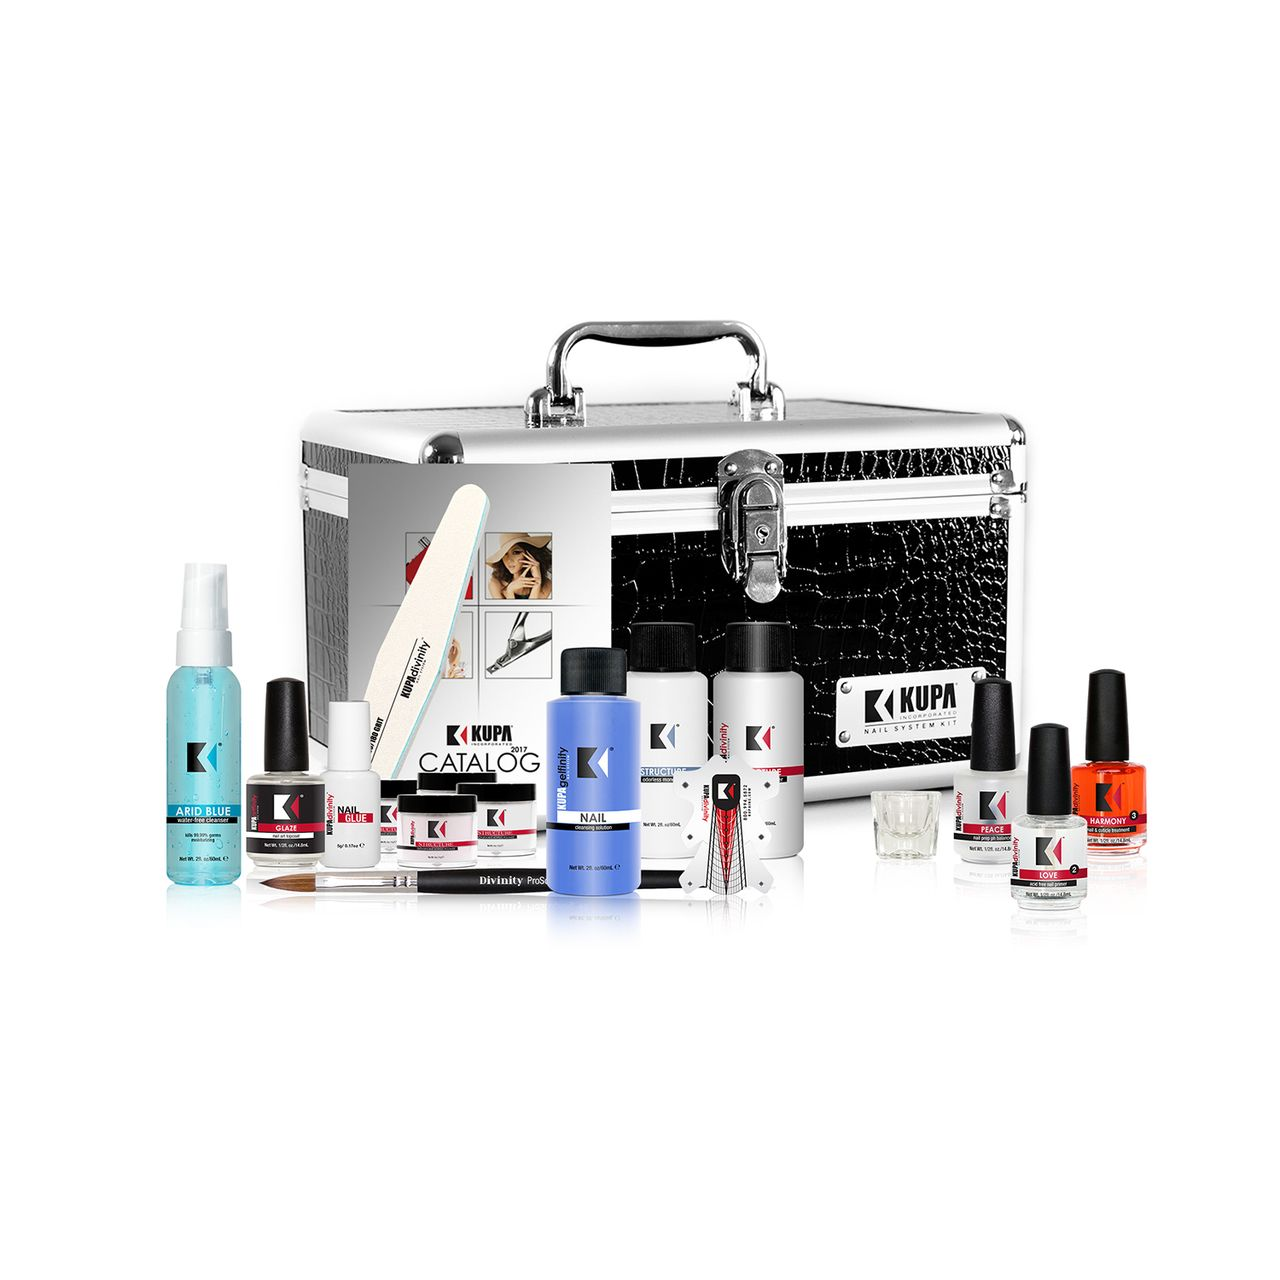 Divinity Acrylic Starter Kit (With images) Acrylic